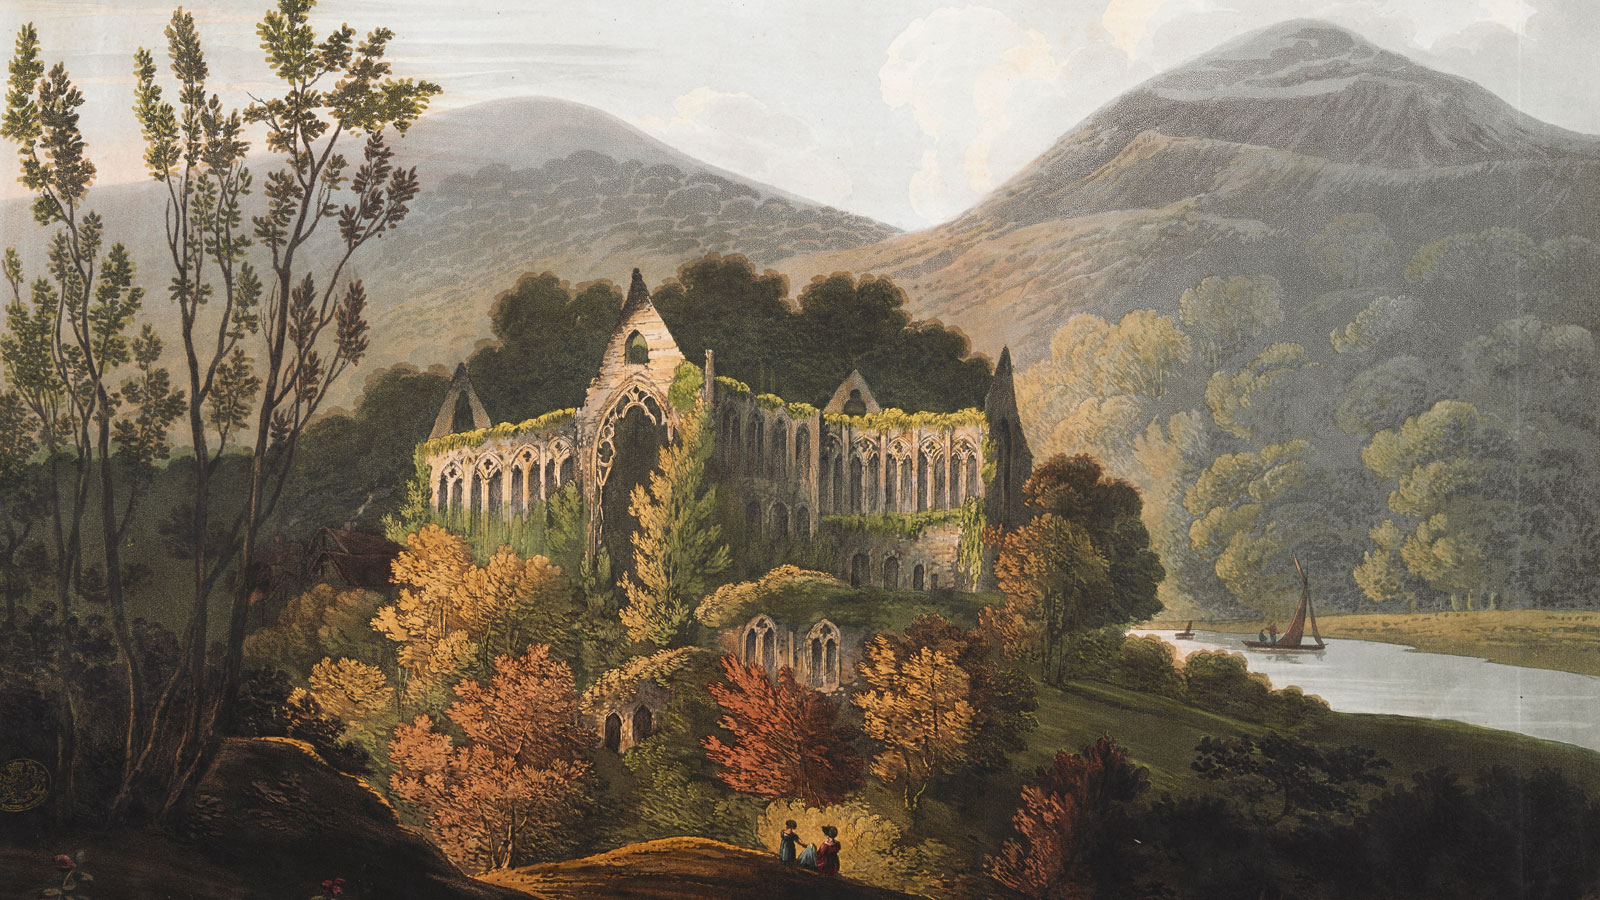 An introduction to 'Tintern Abbey' - The British Library